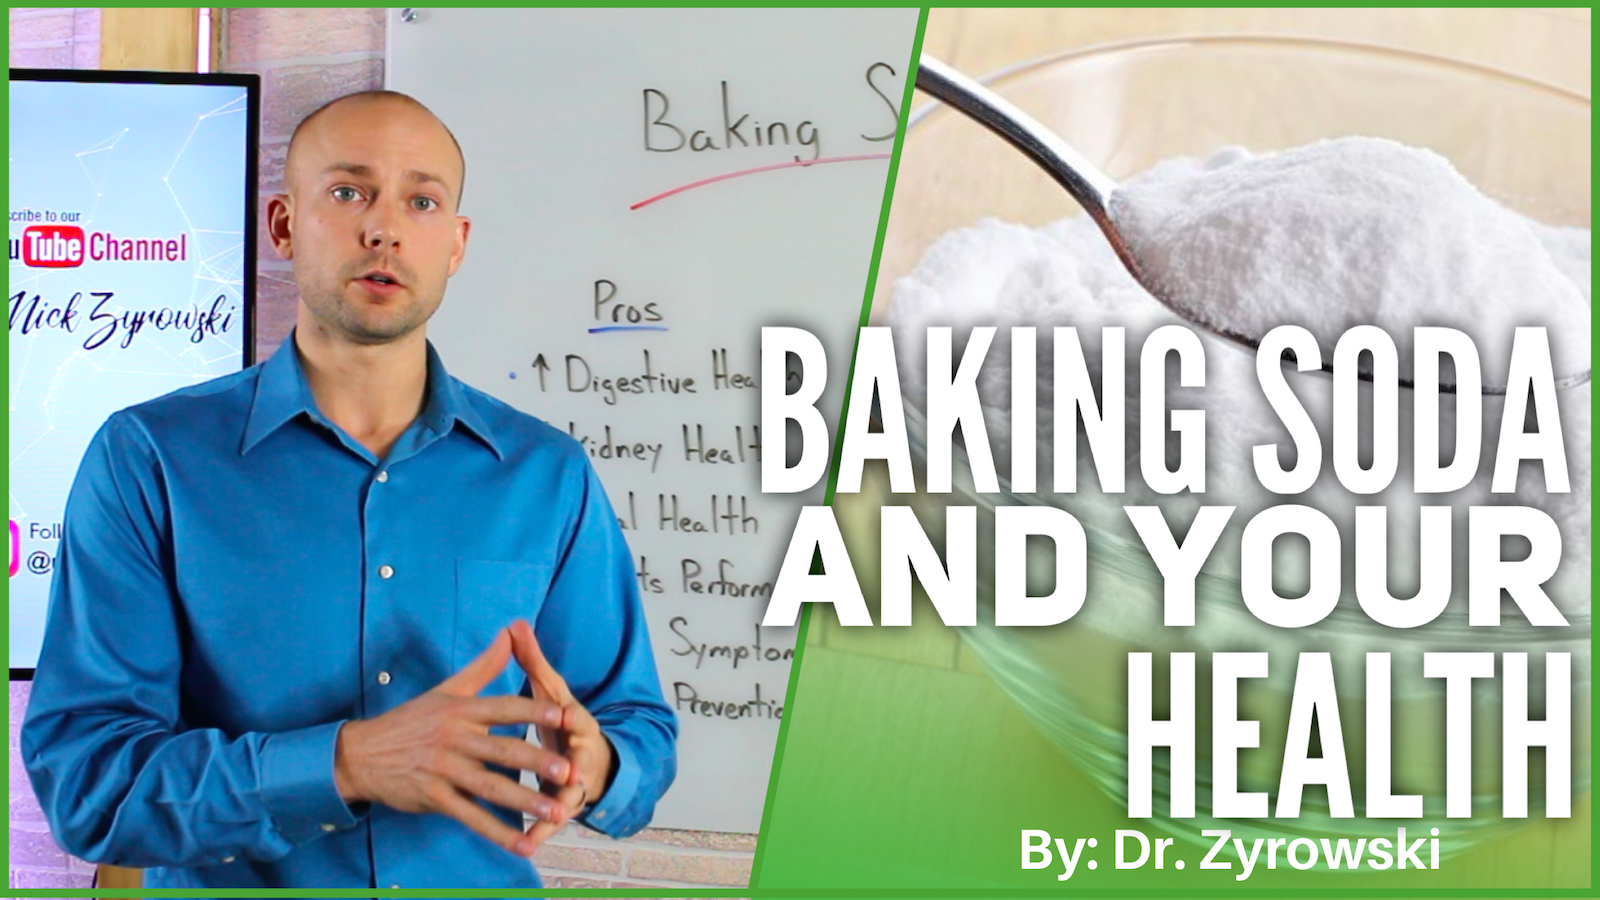 Baking Soda And Your Health